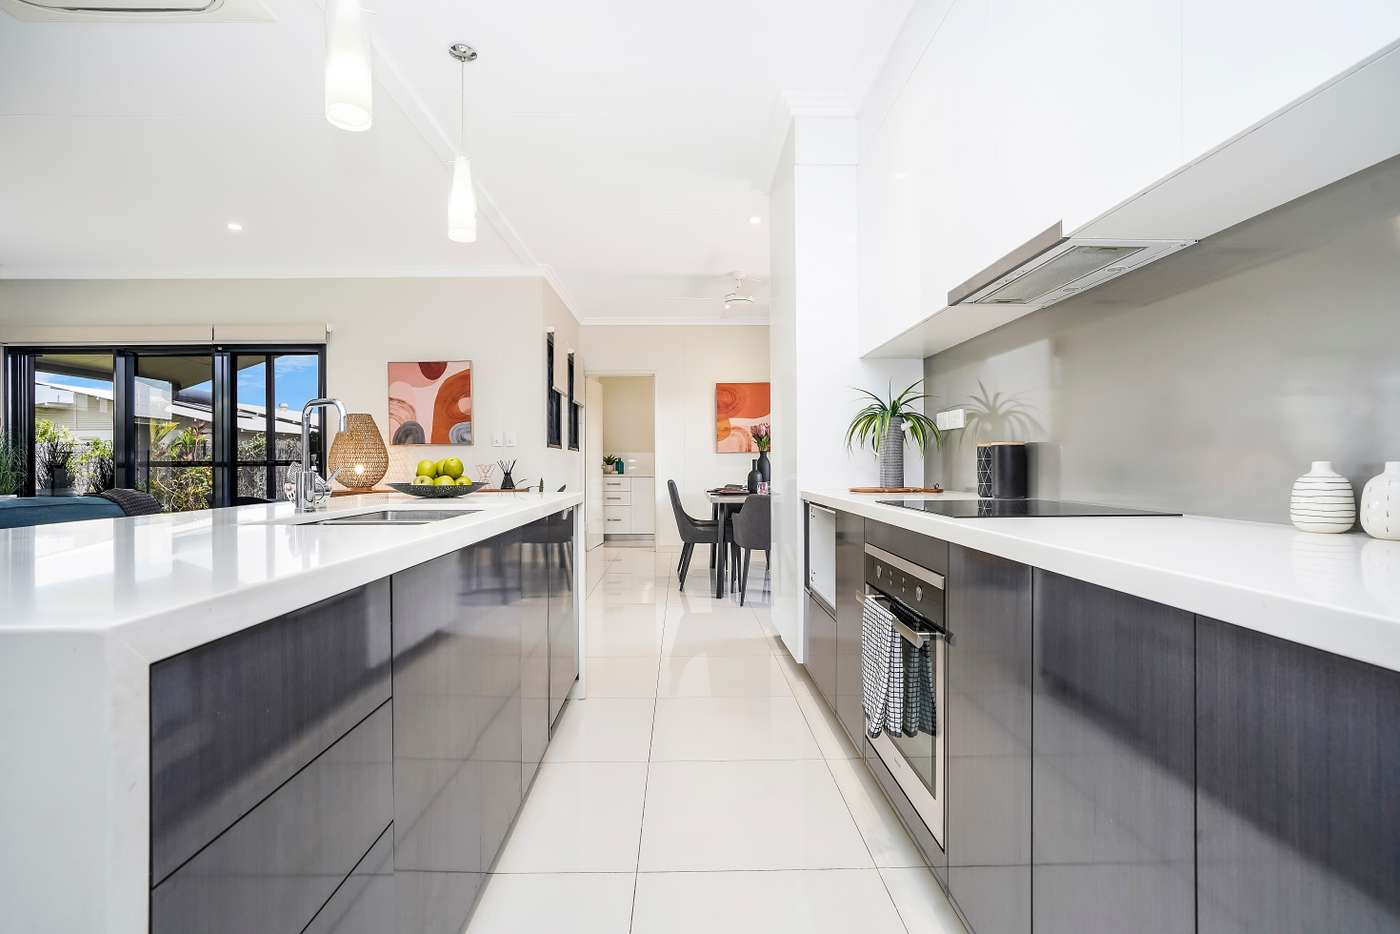 Sixth view of Homely house listing, 26 Coleman Street, Muirhead NT 810